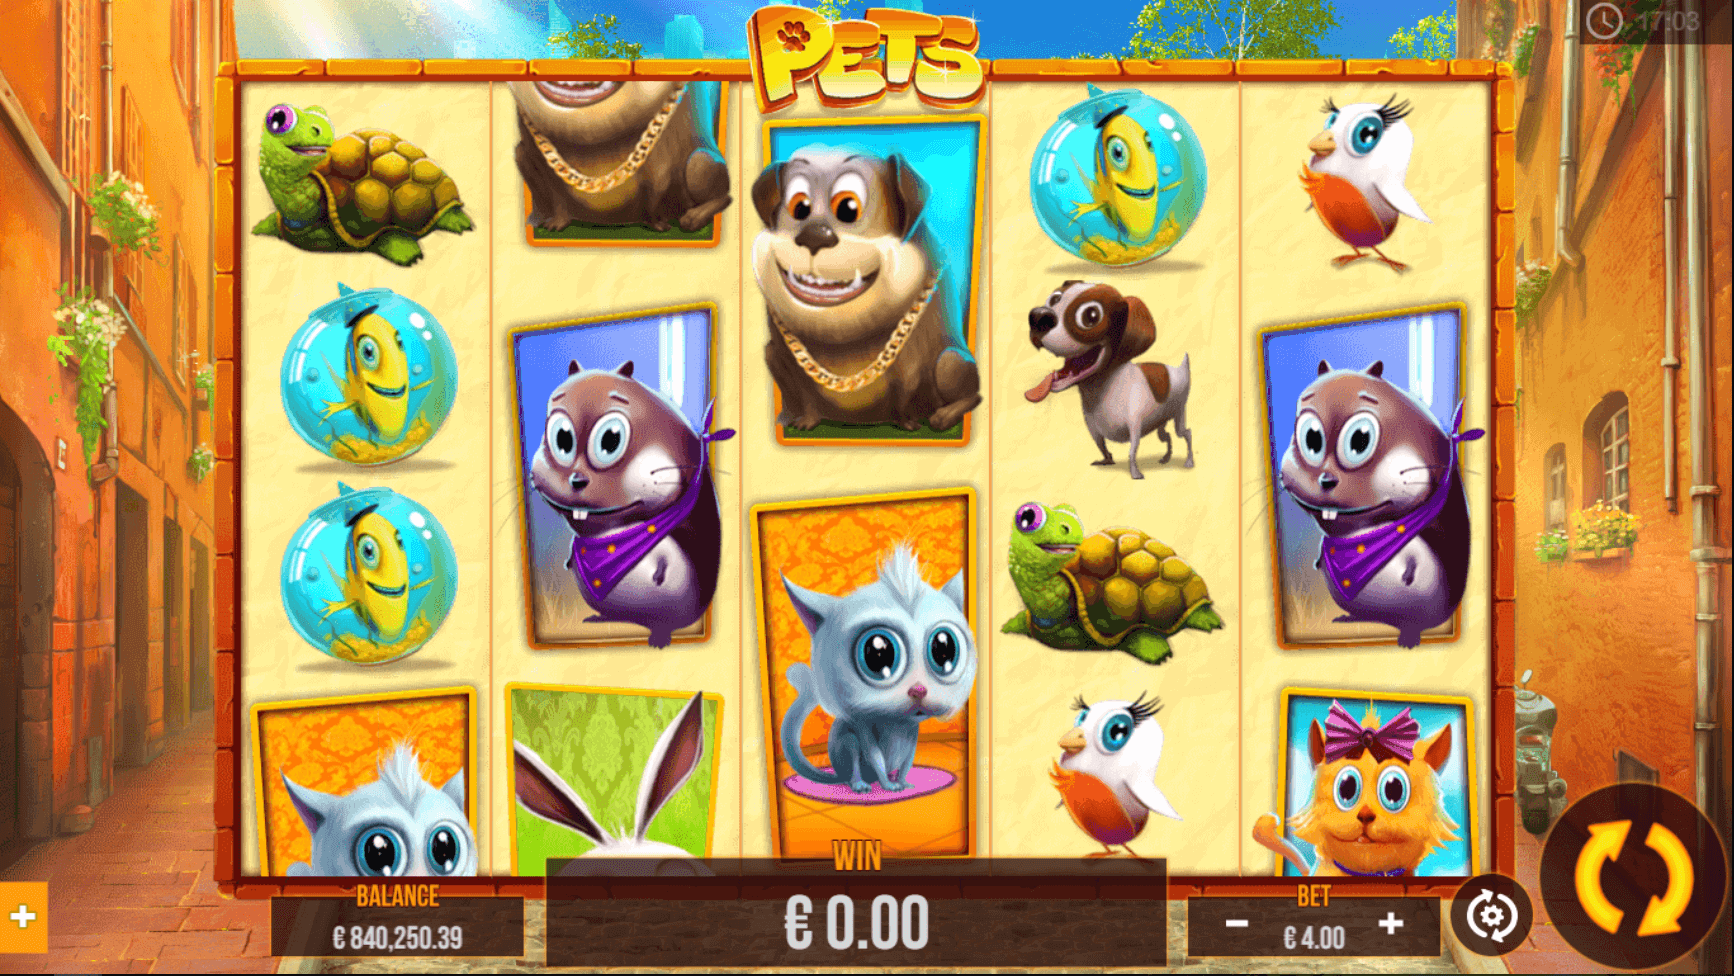 Pets game scene.png